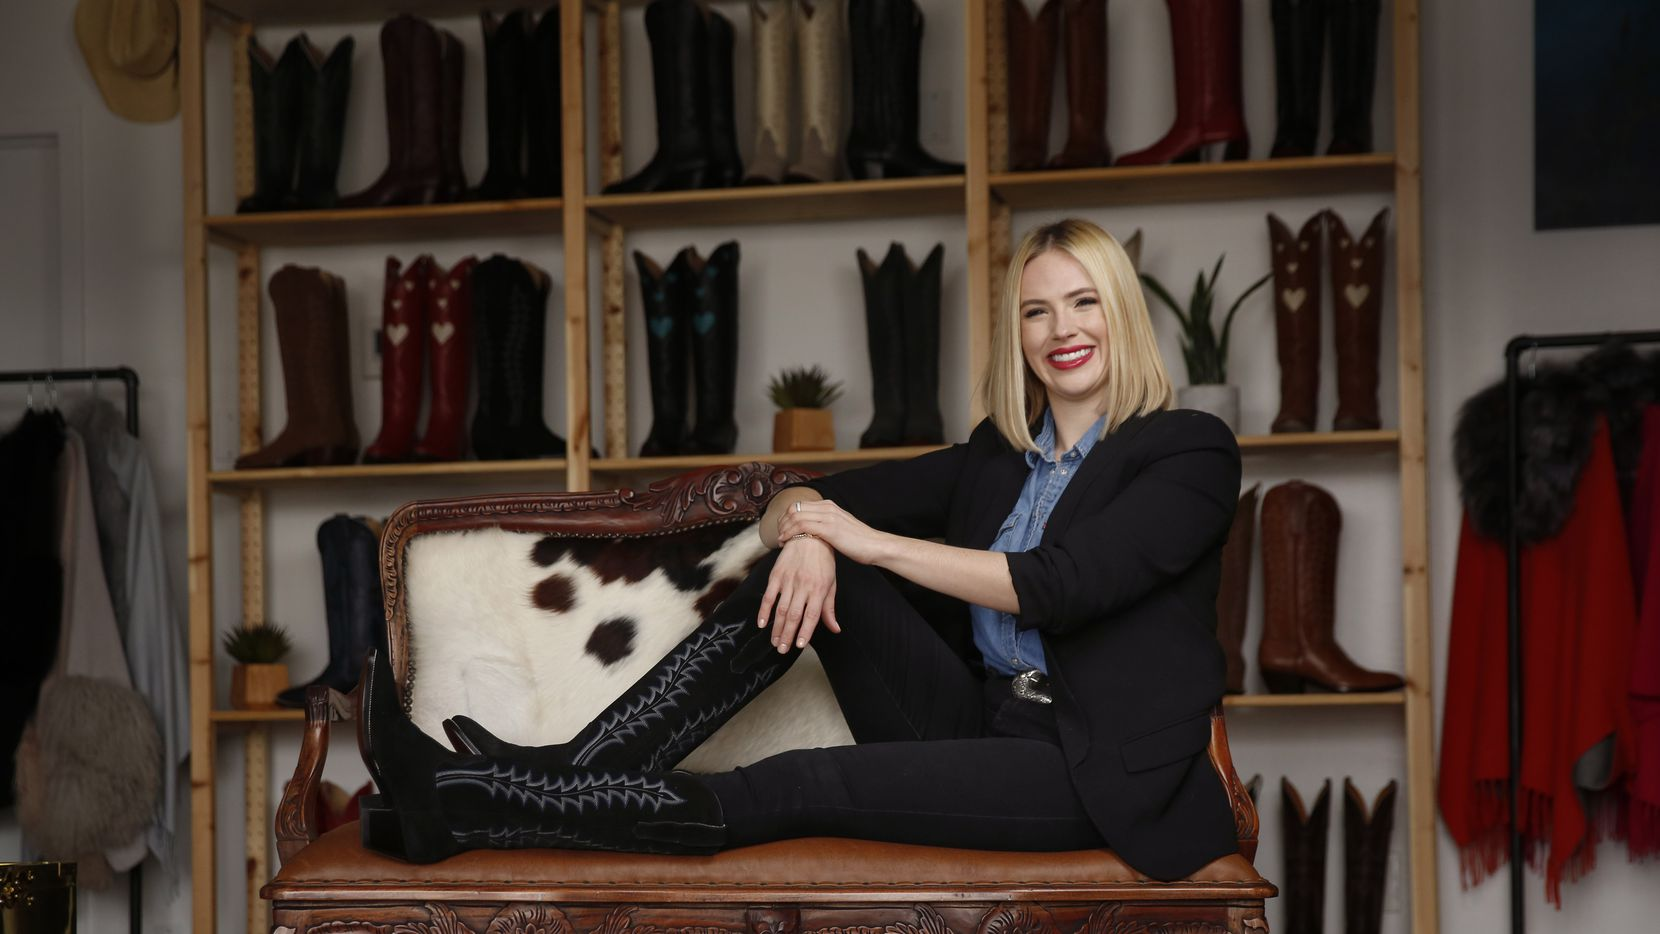 After being laid off from her oil and gas company job, Lizzy Chesnut Bentley turned her attention to creating cowboy boot options appropriate for daily wear by business professionals.